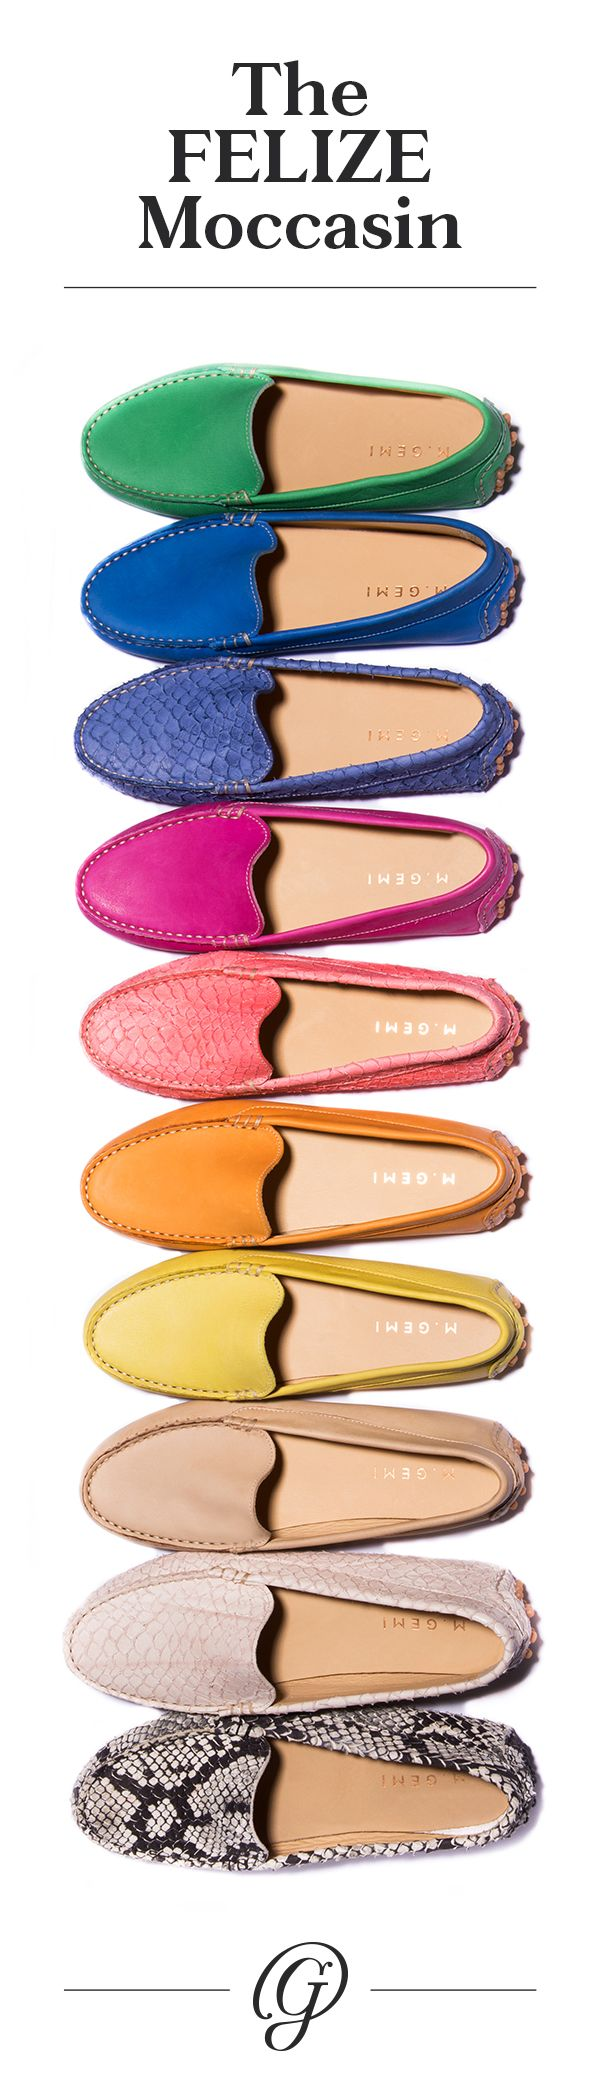 In a tiny, woman-owned factory, we handcraft our moccasins, stitch-by-stitch.